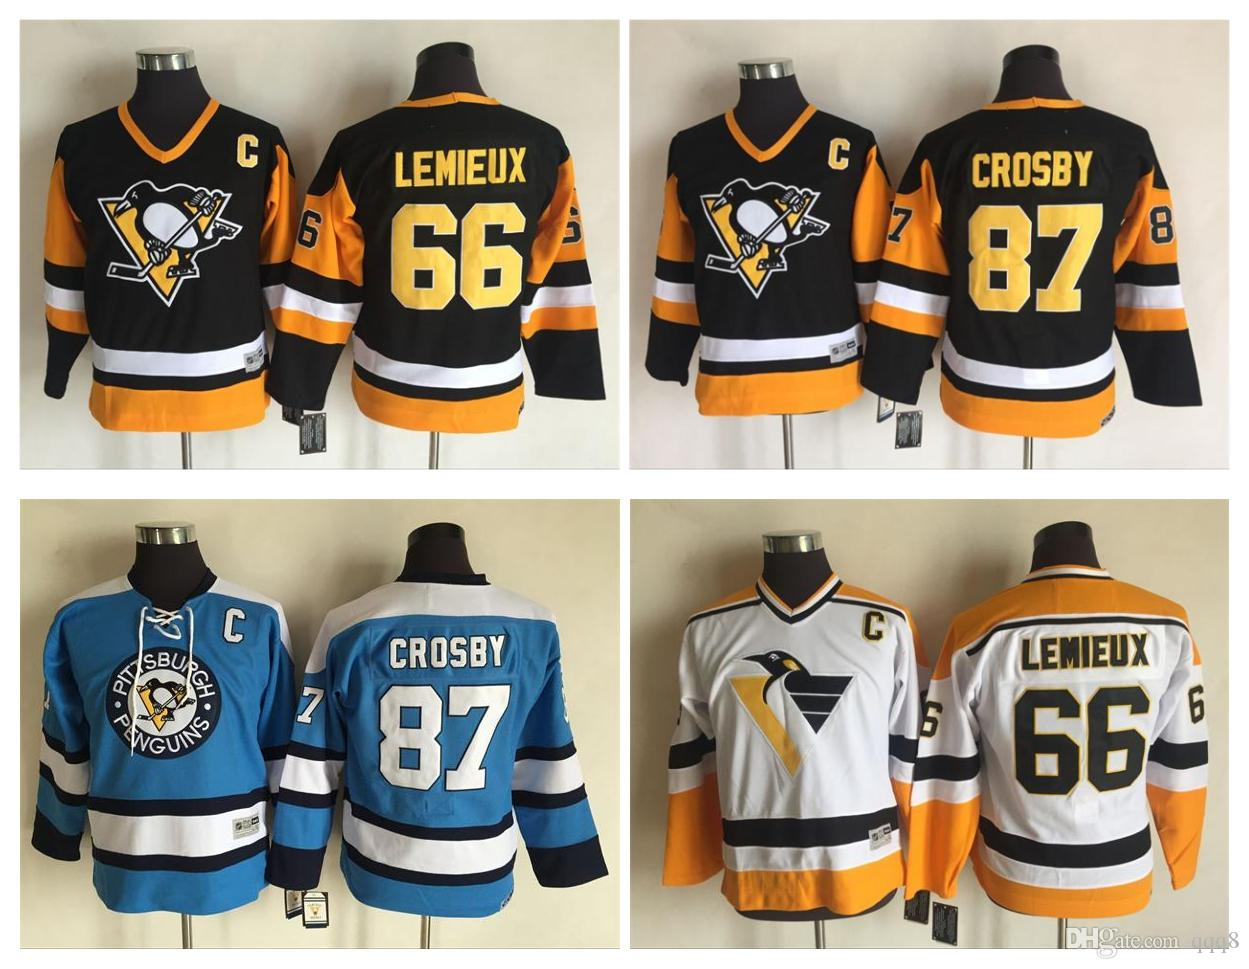 cff4b3f13 Youth CCM Retro Pittsburgh Penguins Jerseys 66 Mario Lemieux Kids 87 Sidney  Crosby Boys Vintage Hockey Jerseys UK 2019 From Qqq8